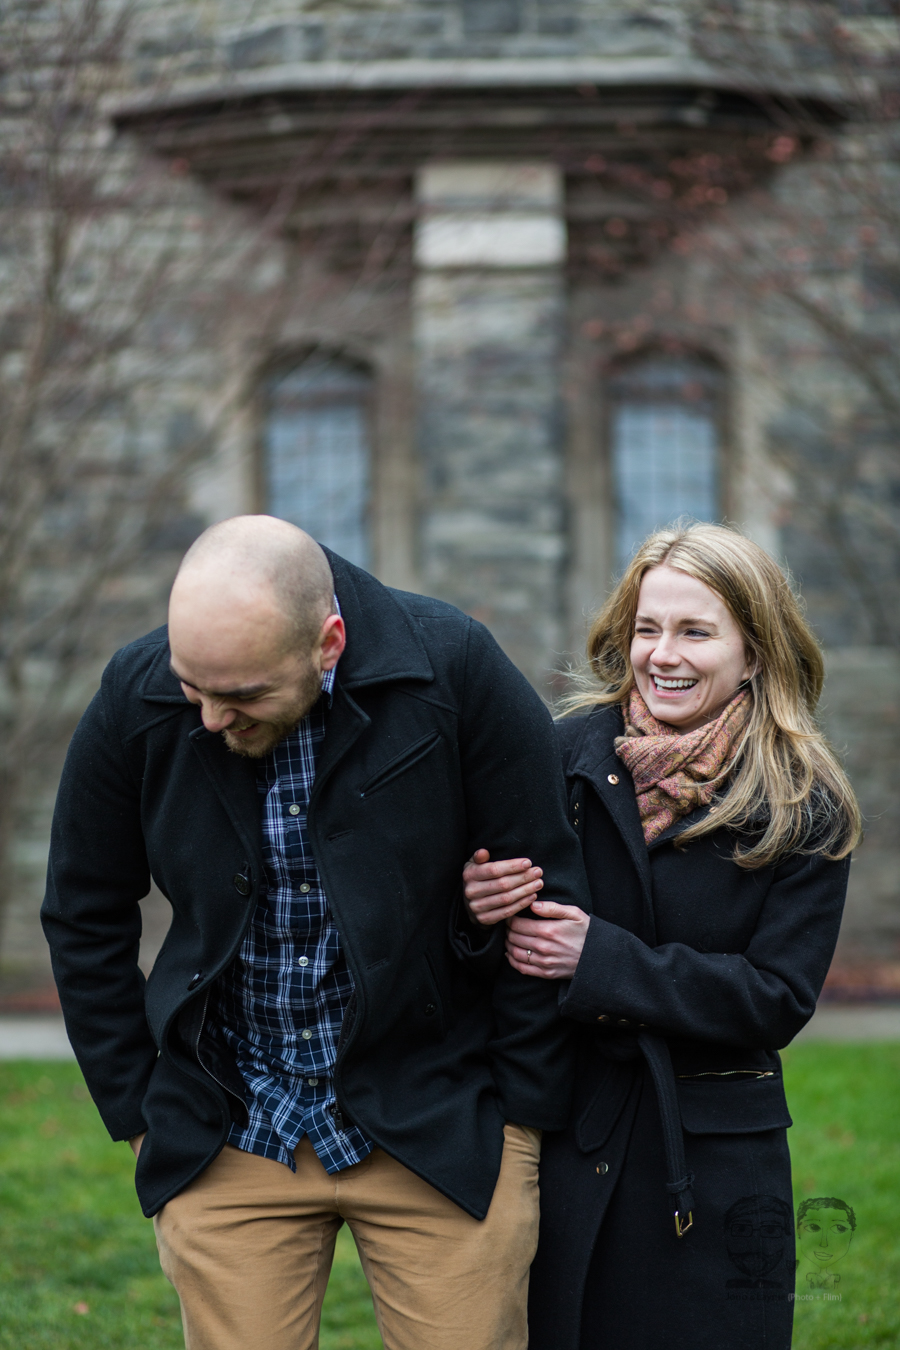 027University of Toronto e-session-Jono & Laynie Co.jpg